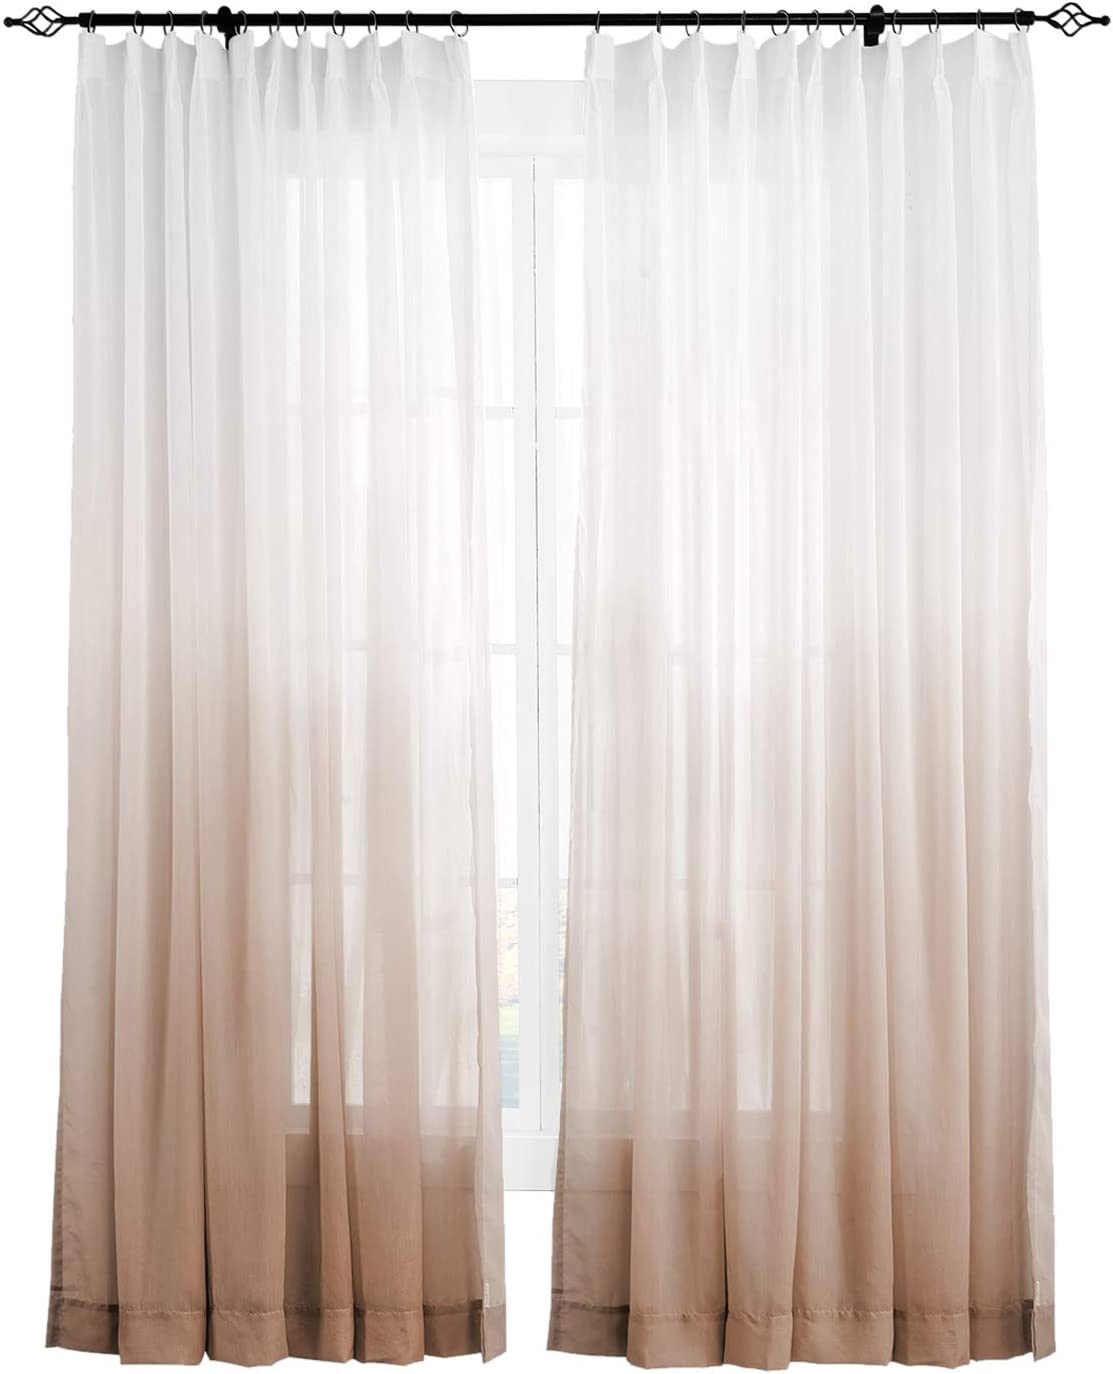 ChadMade Indoor Low price Outdoor Gradient Ombre Pinch Sheer Credence Pleat Curtain